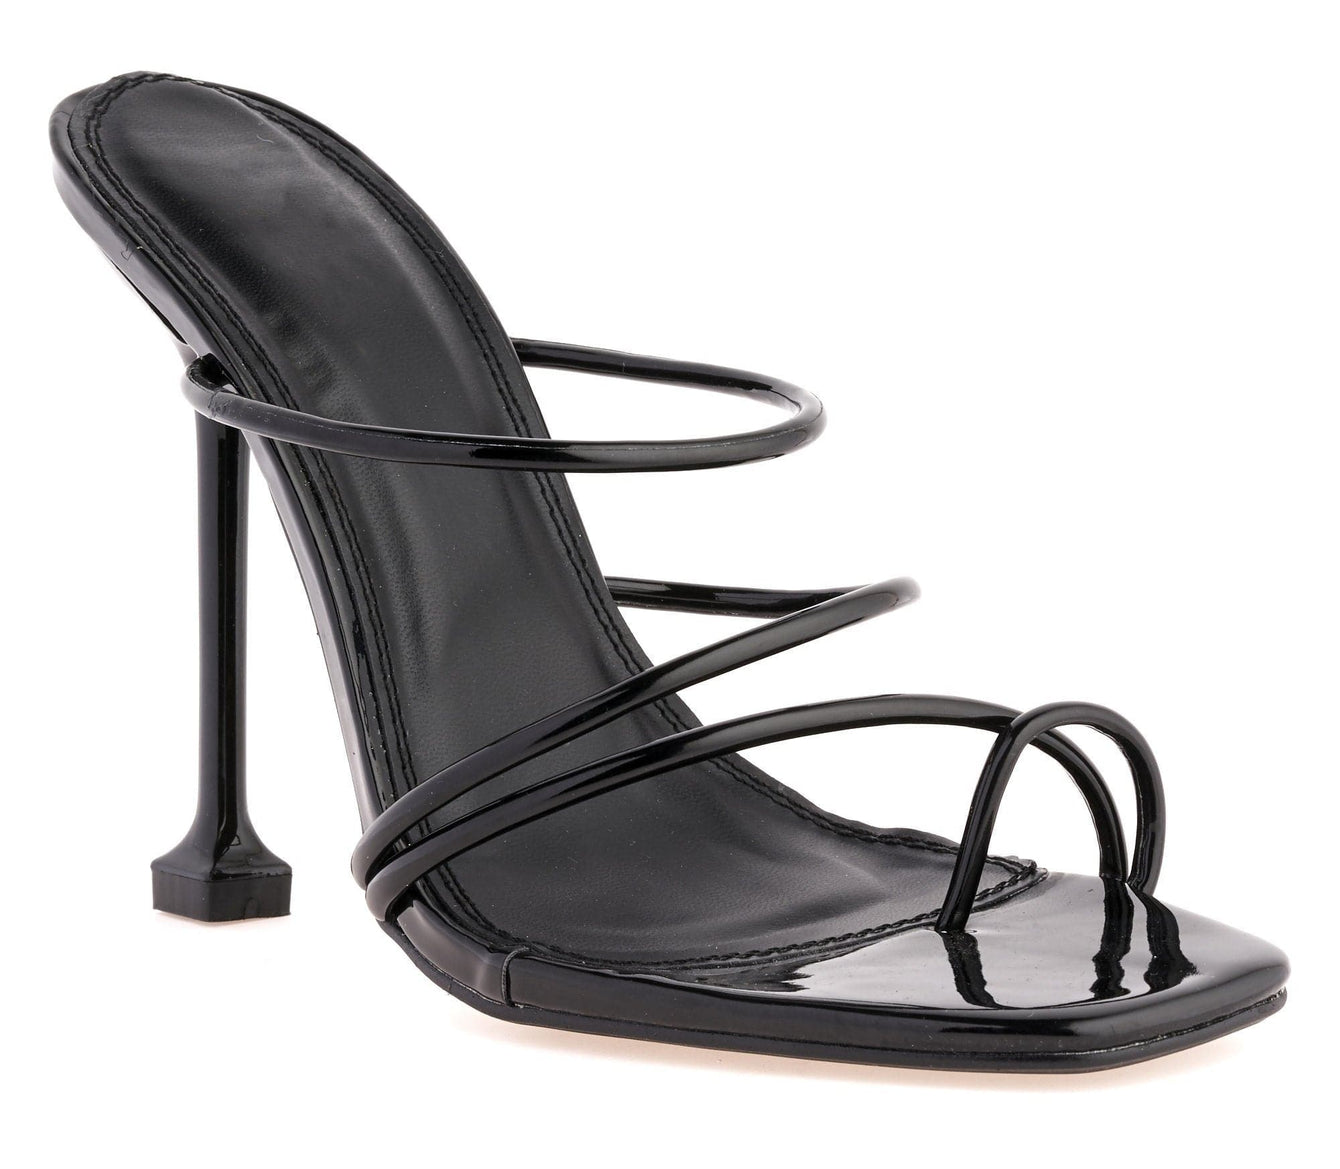 Mariana Toe Ring Strappy Stiletto Mule in Black